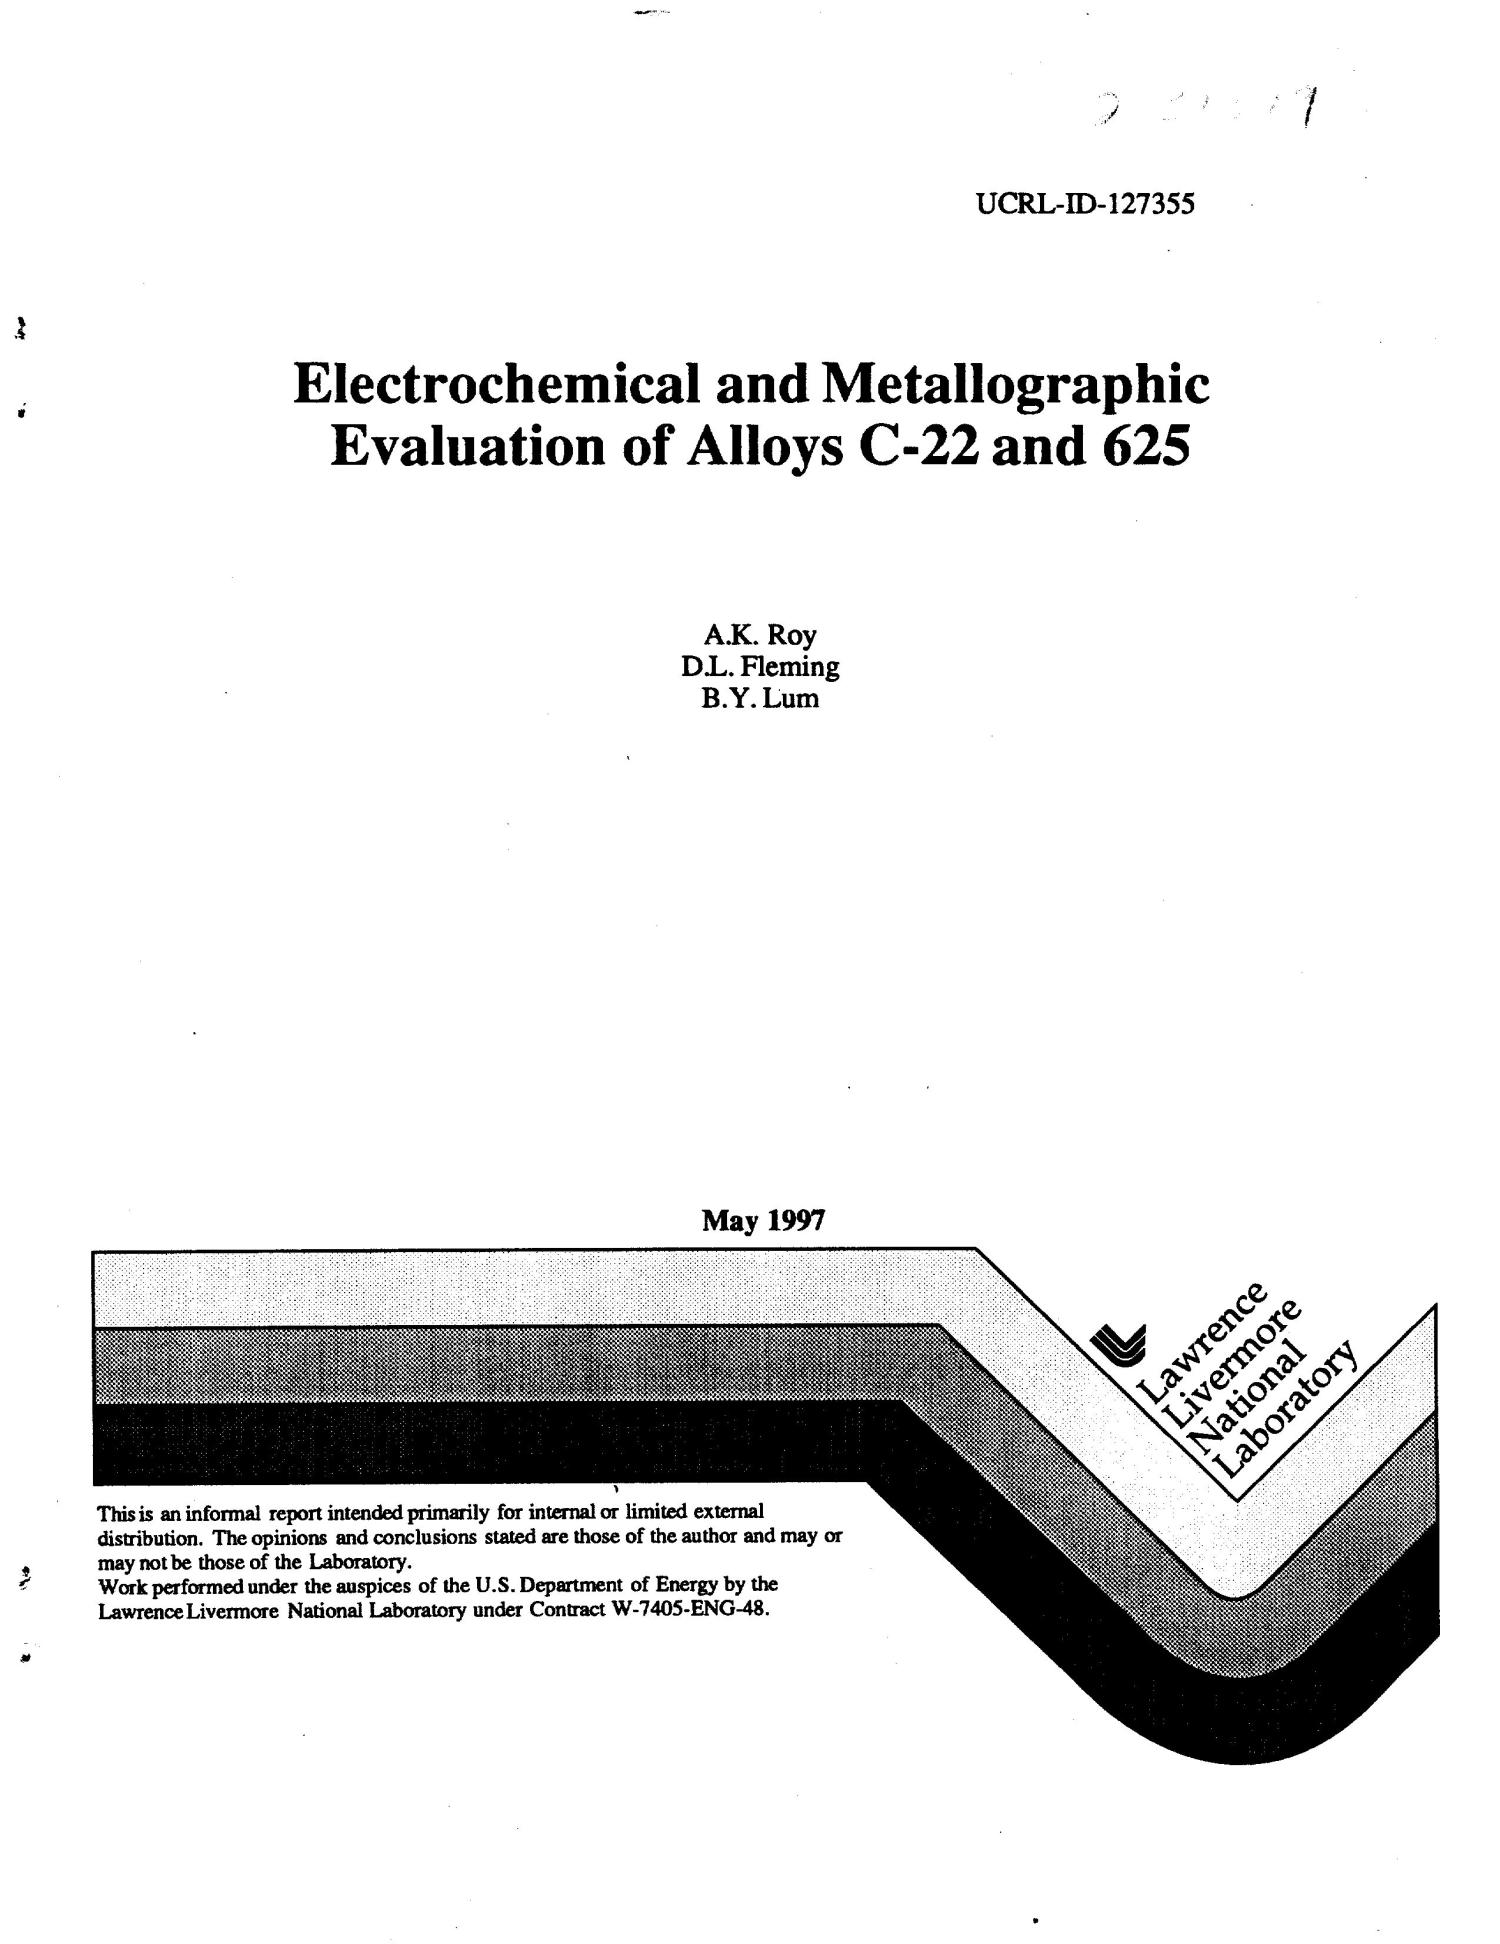 Electrochemical and metallographic evaluation of alloys C-22 and 625                                                                                                      [Sequence #]: 1 of 13